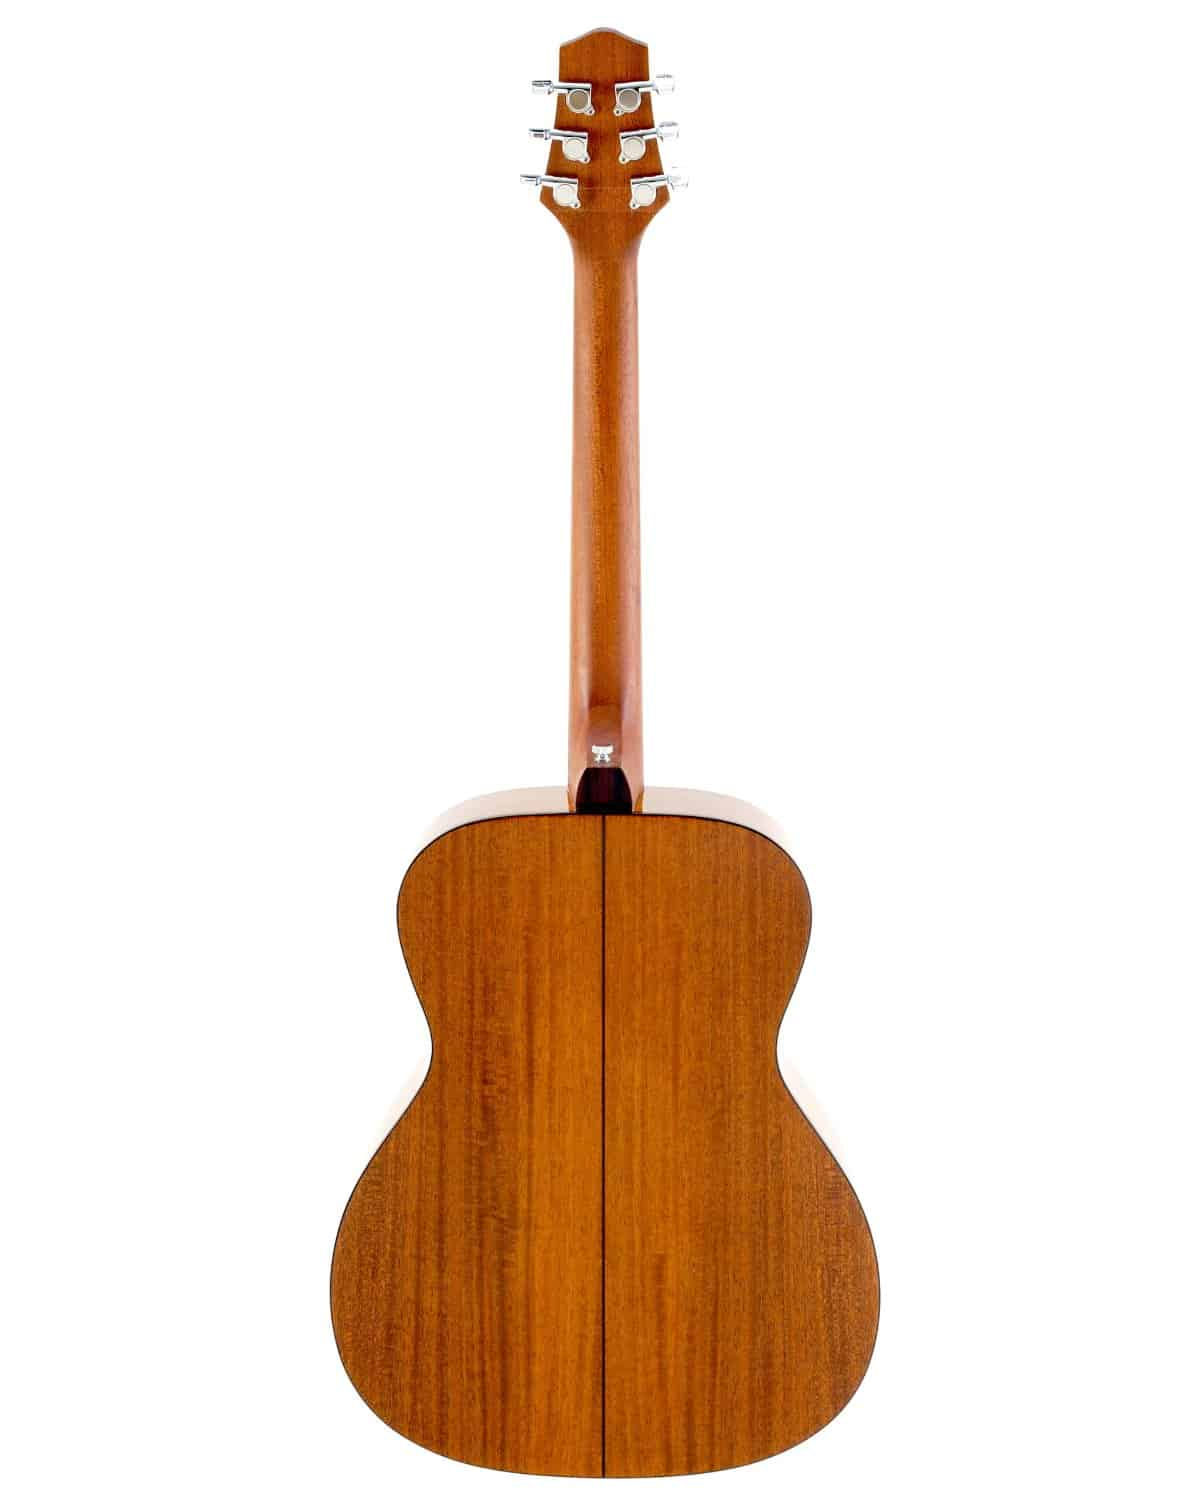 Voyage-Air Transit Series VAOM-02 Folding Orchestra Model Acoustic Guitar Rear View